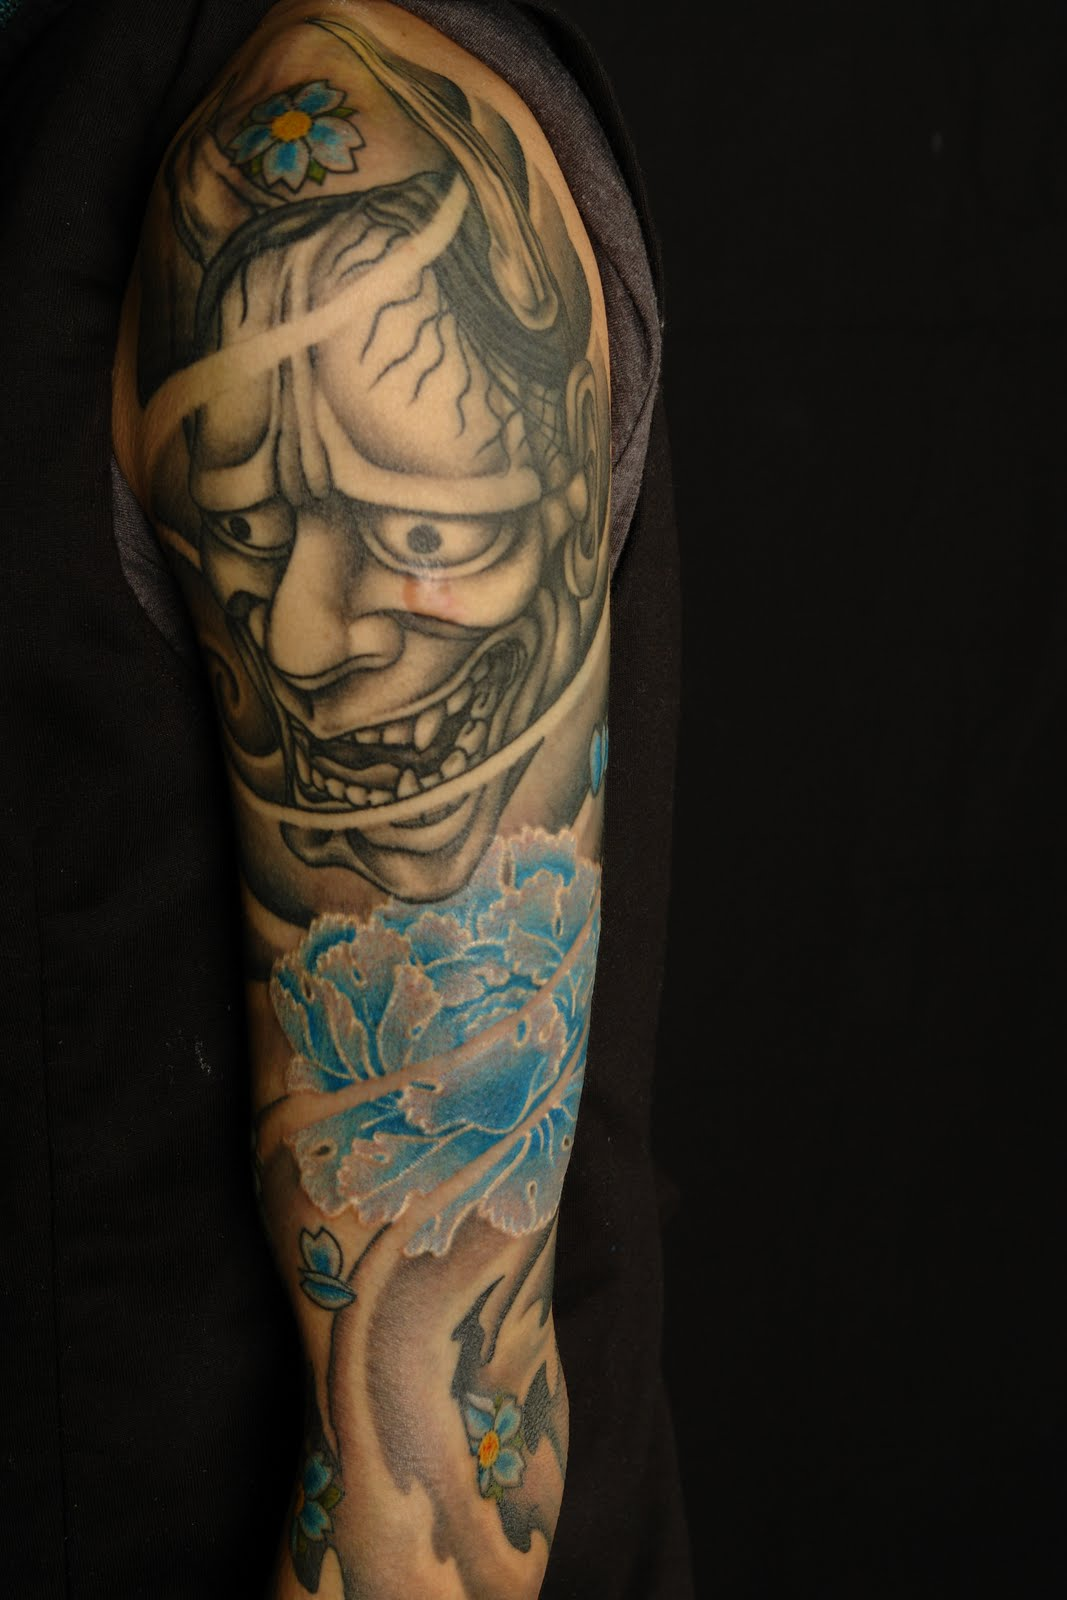 tattoos for men 2011 japanese sleeve tattoos the coolest japanese tattoo designs for men. Black Bedroom Furniture Sets. Home Design Ideas